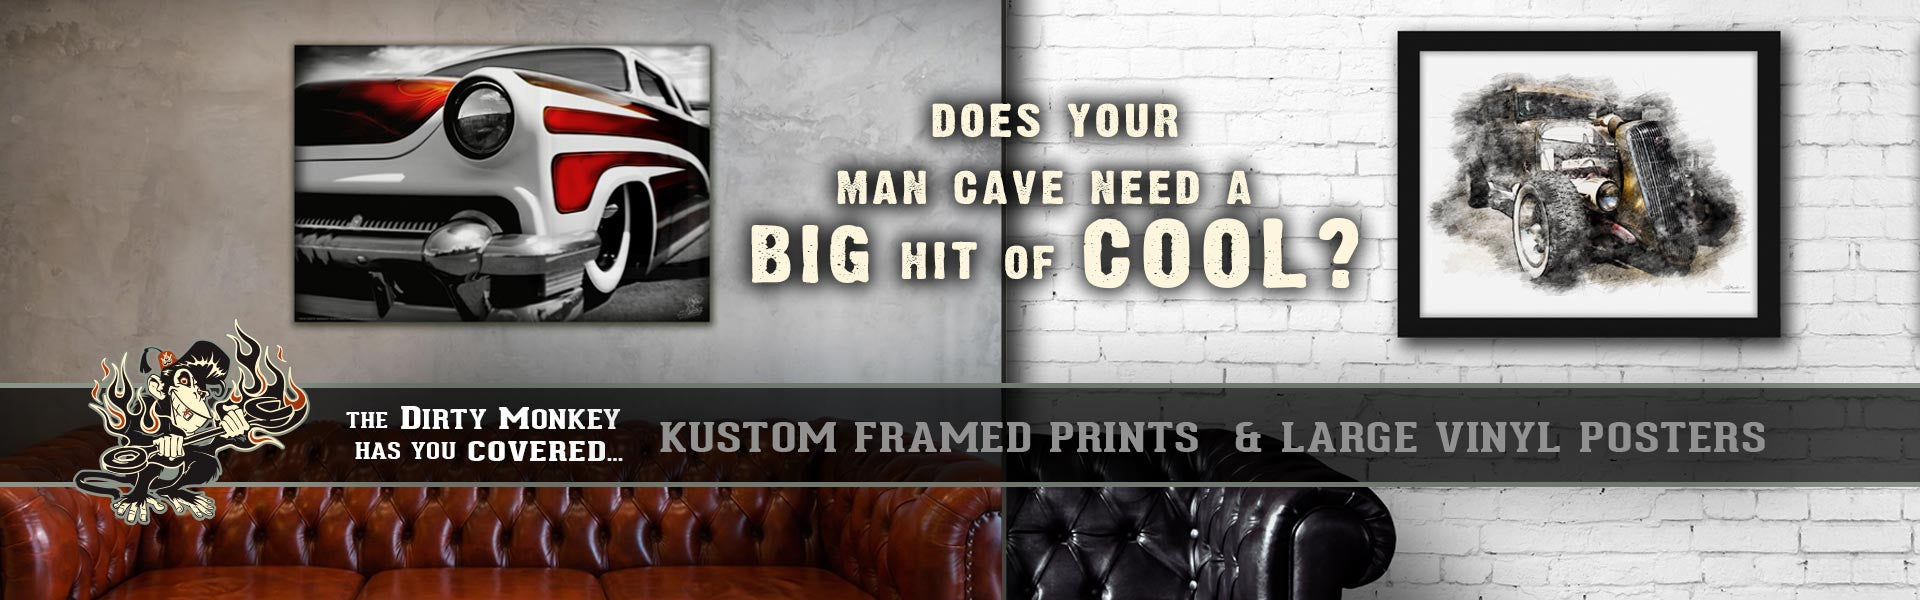 Garage Art & Man Cave Decor